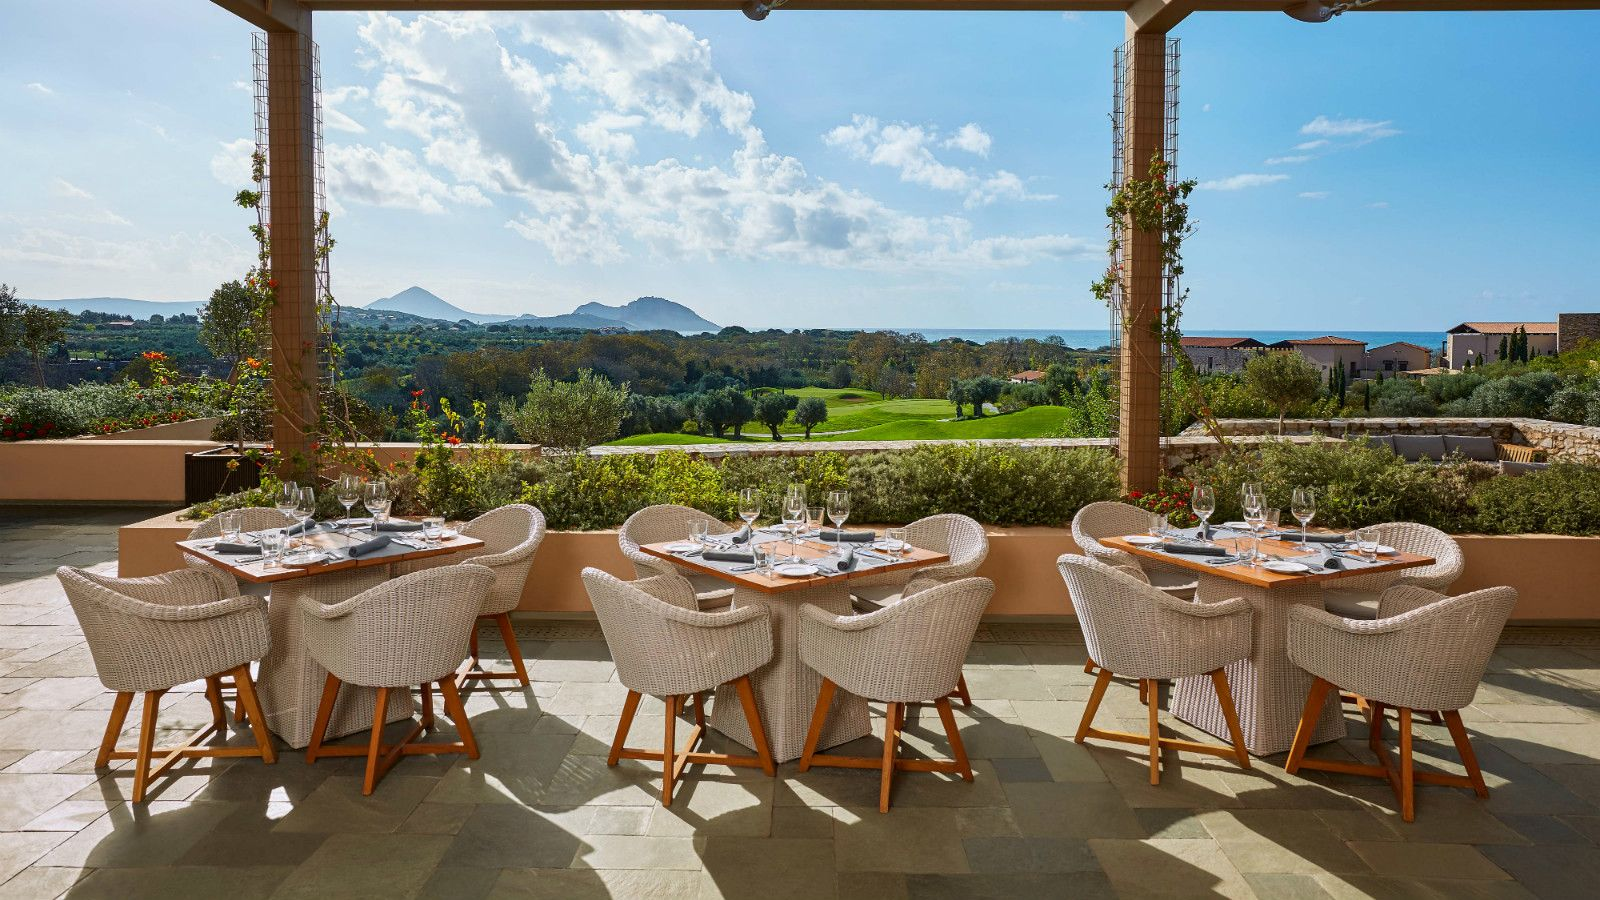 The Romanos a Luxury Collection Resort Costa Navarino Flame Restaurant View over the Dunes Course